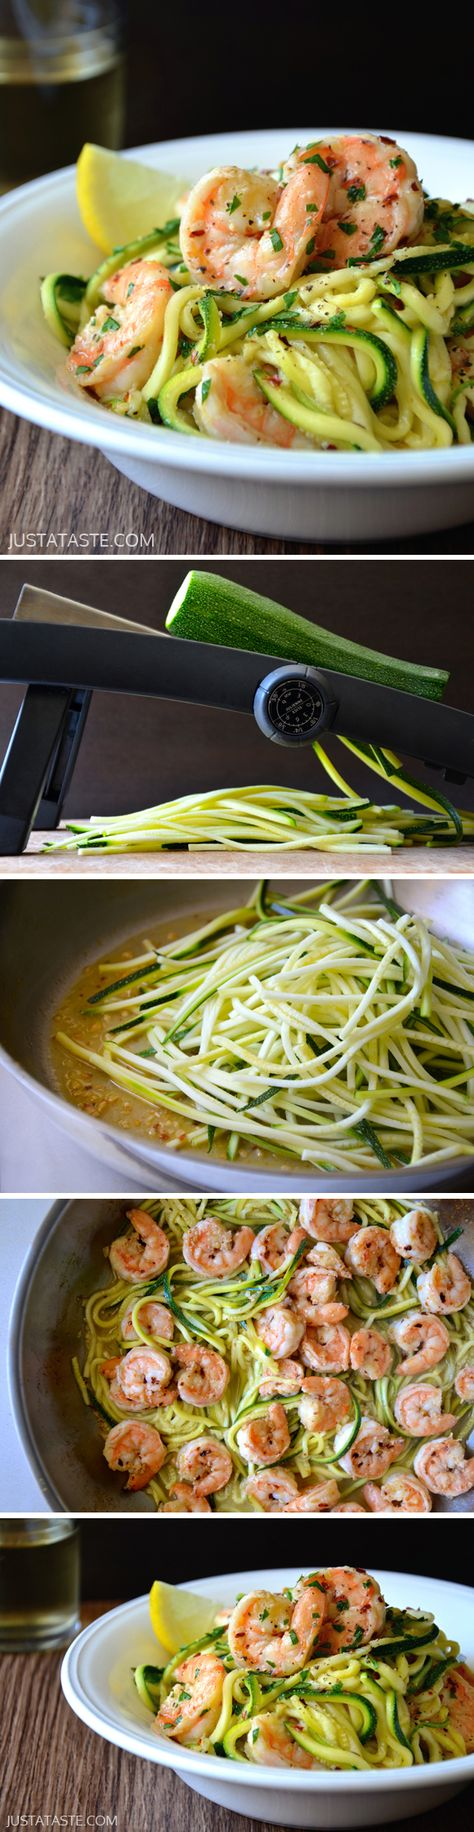 Shrimp Scampi with Zucchini Noodles - Enjoy this recipe and For great motivation, health and fitness tips, check us out at: www.betterbodyfitnessbootcamps.com Follow us on Facebook at: www.facebook.com/betterbodyfitnessbootcamps